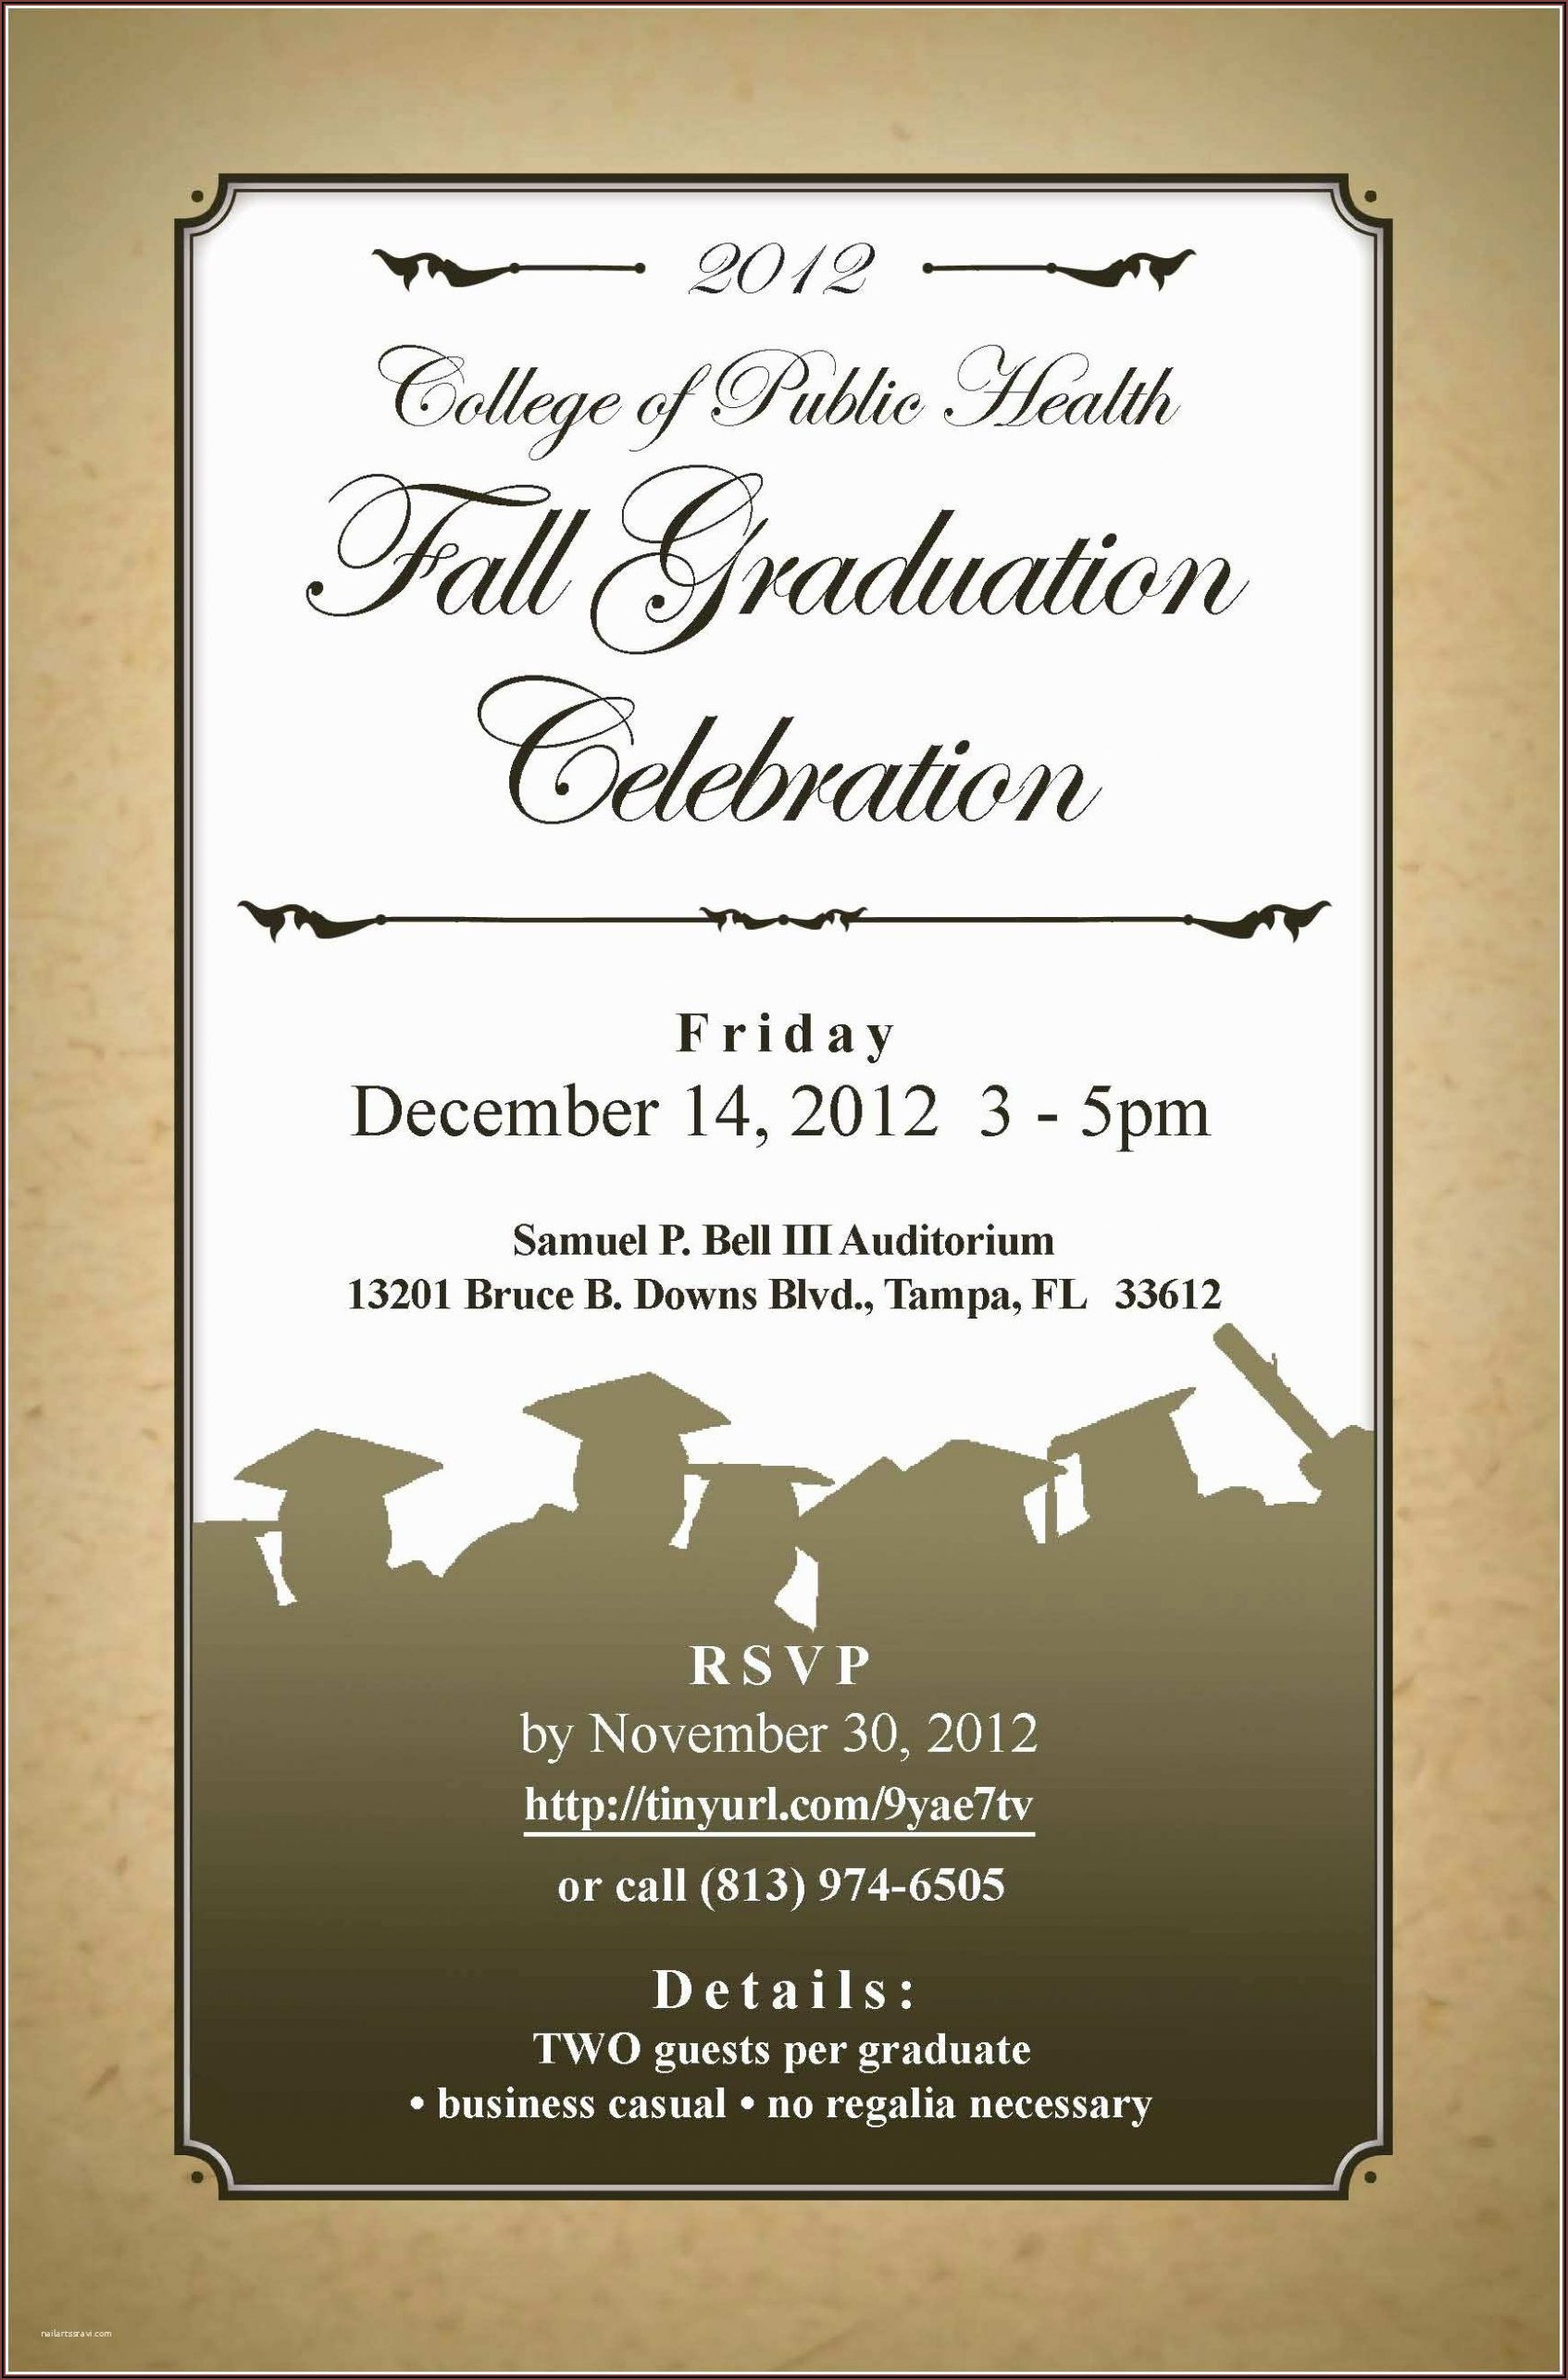 Graduation Dinner Invitation Card Sample